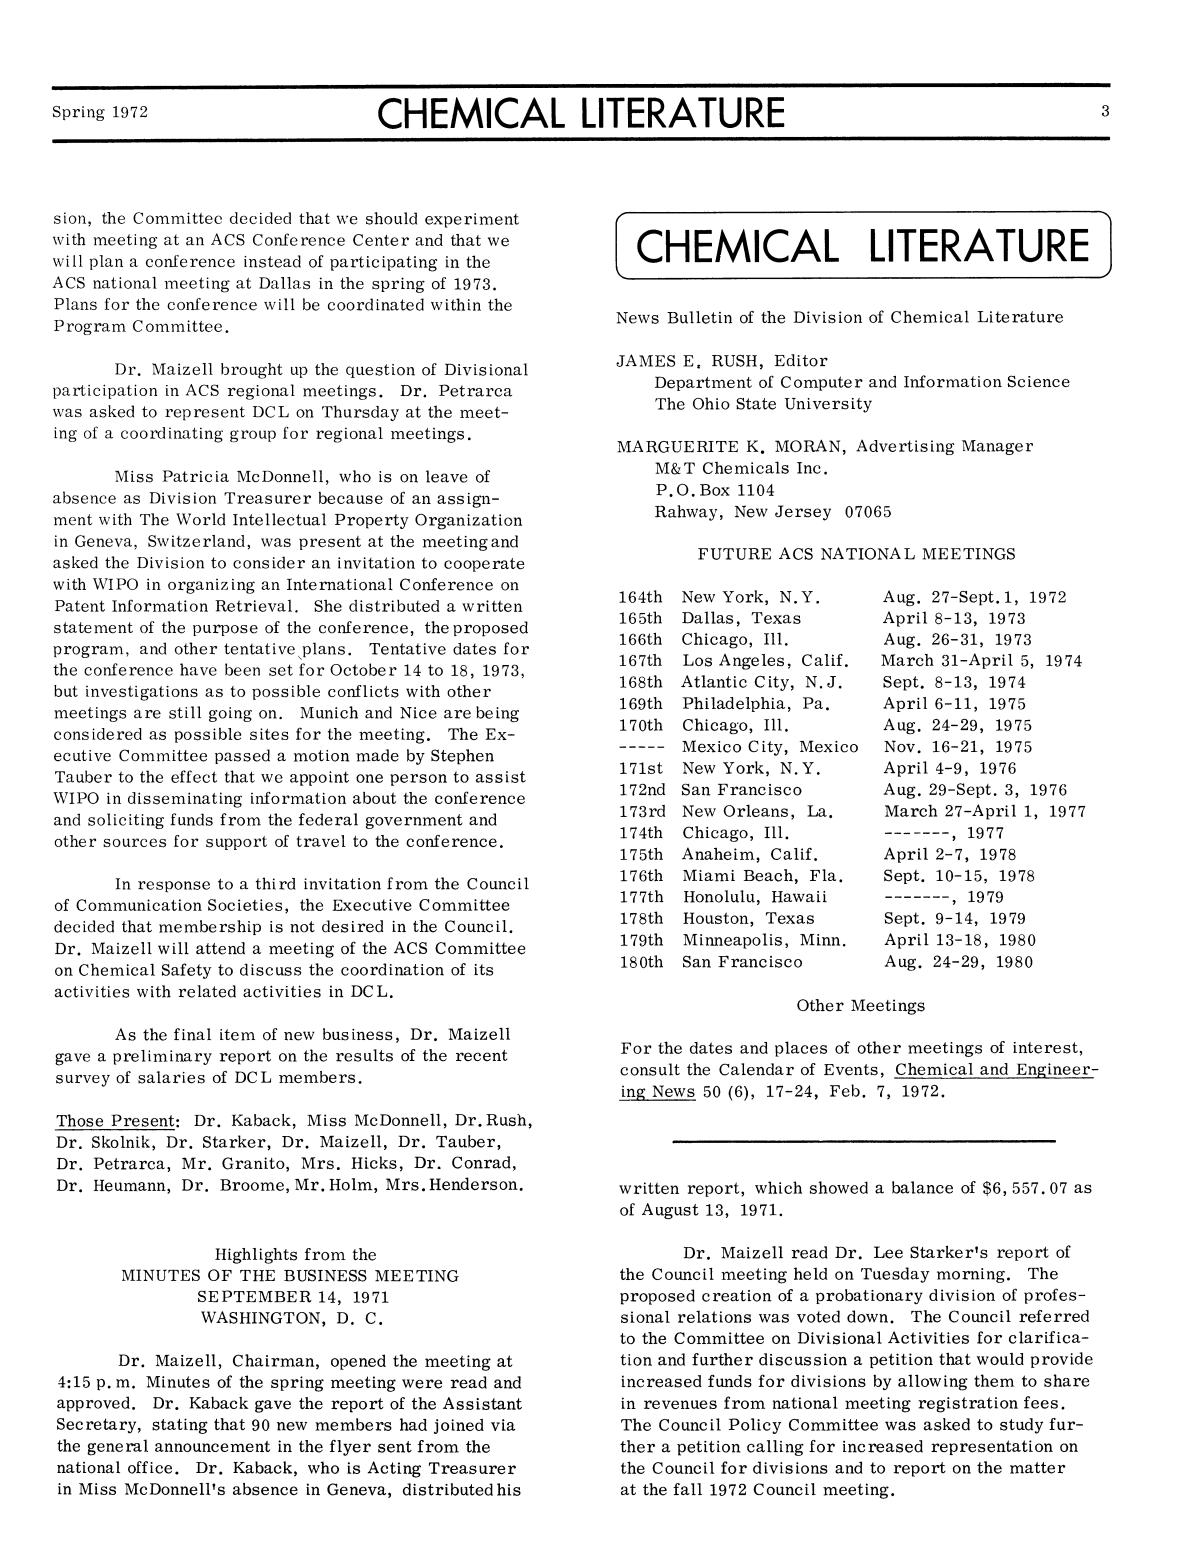 Chemical Literature, Volume 24, Number 1, Spring 1972                                                                                                      3